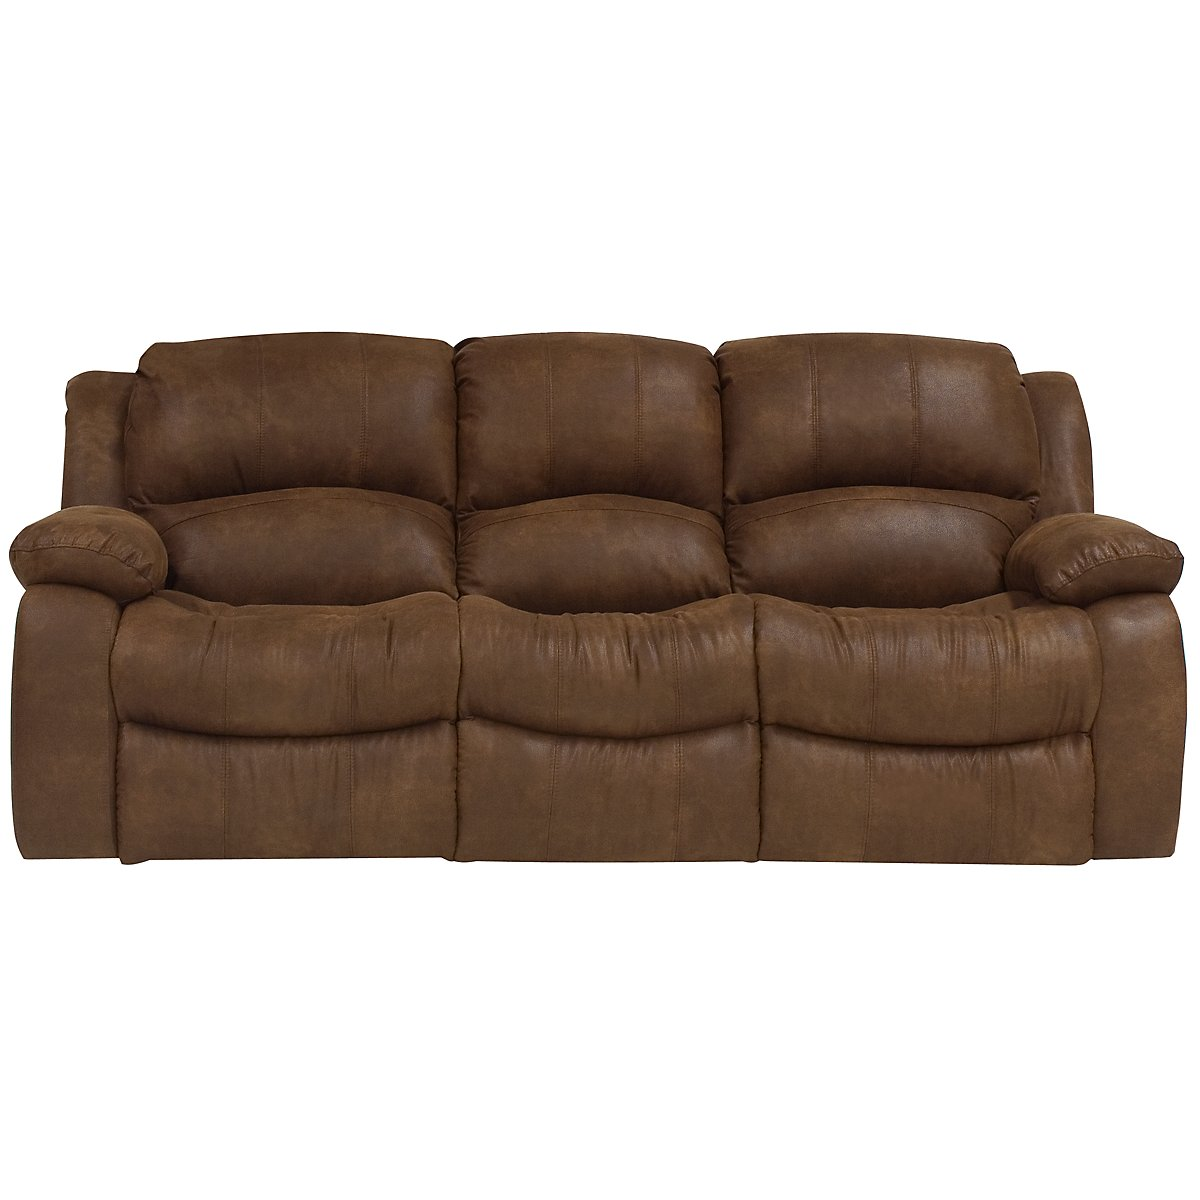 Tan Reclining Sofa Review